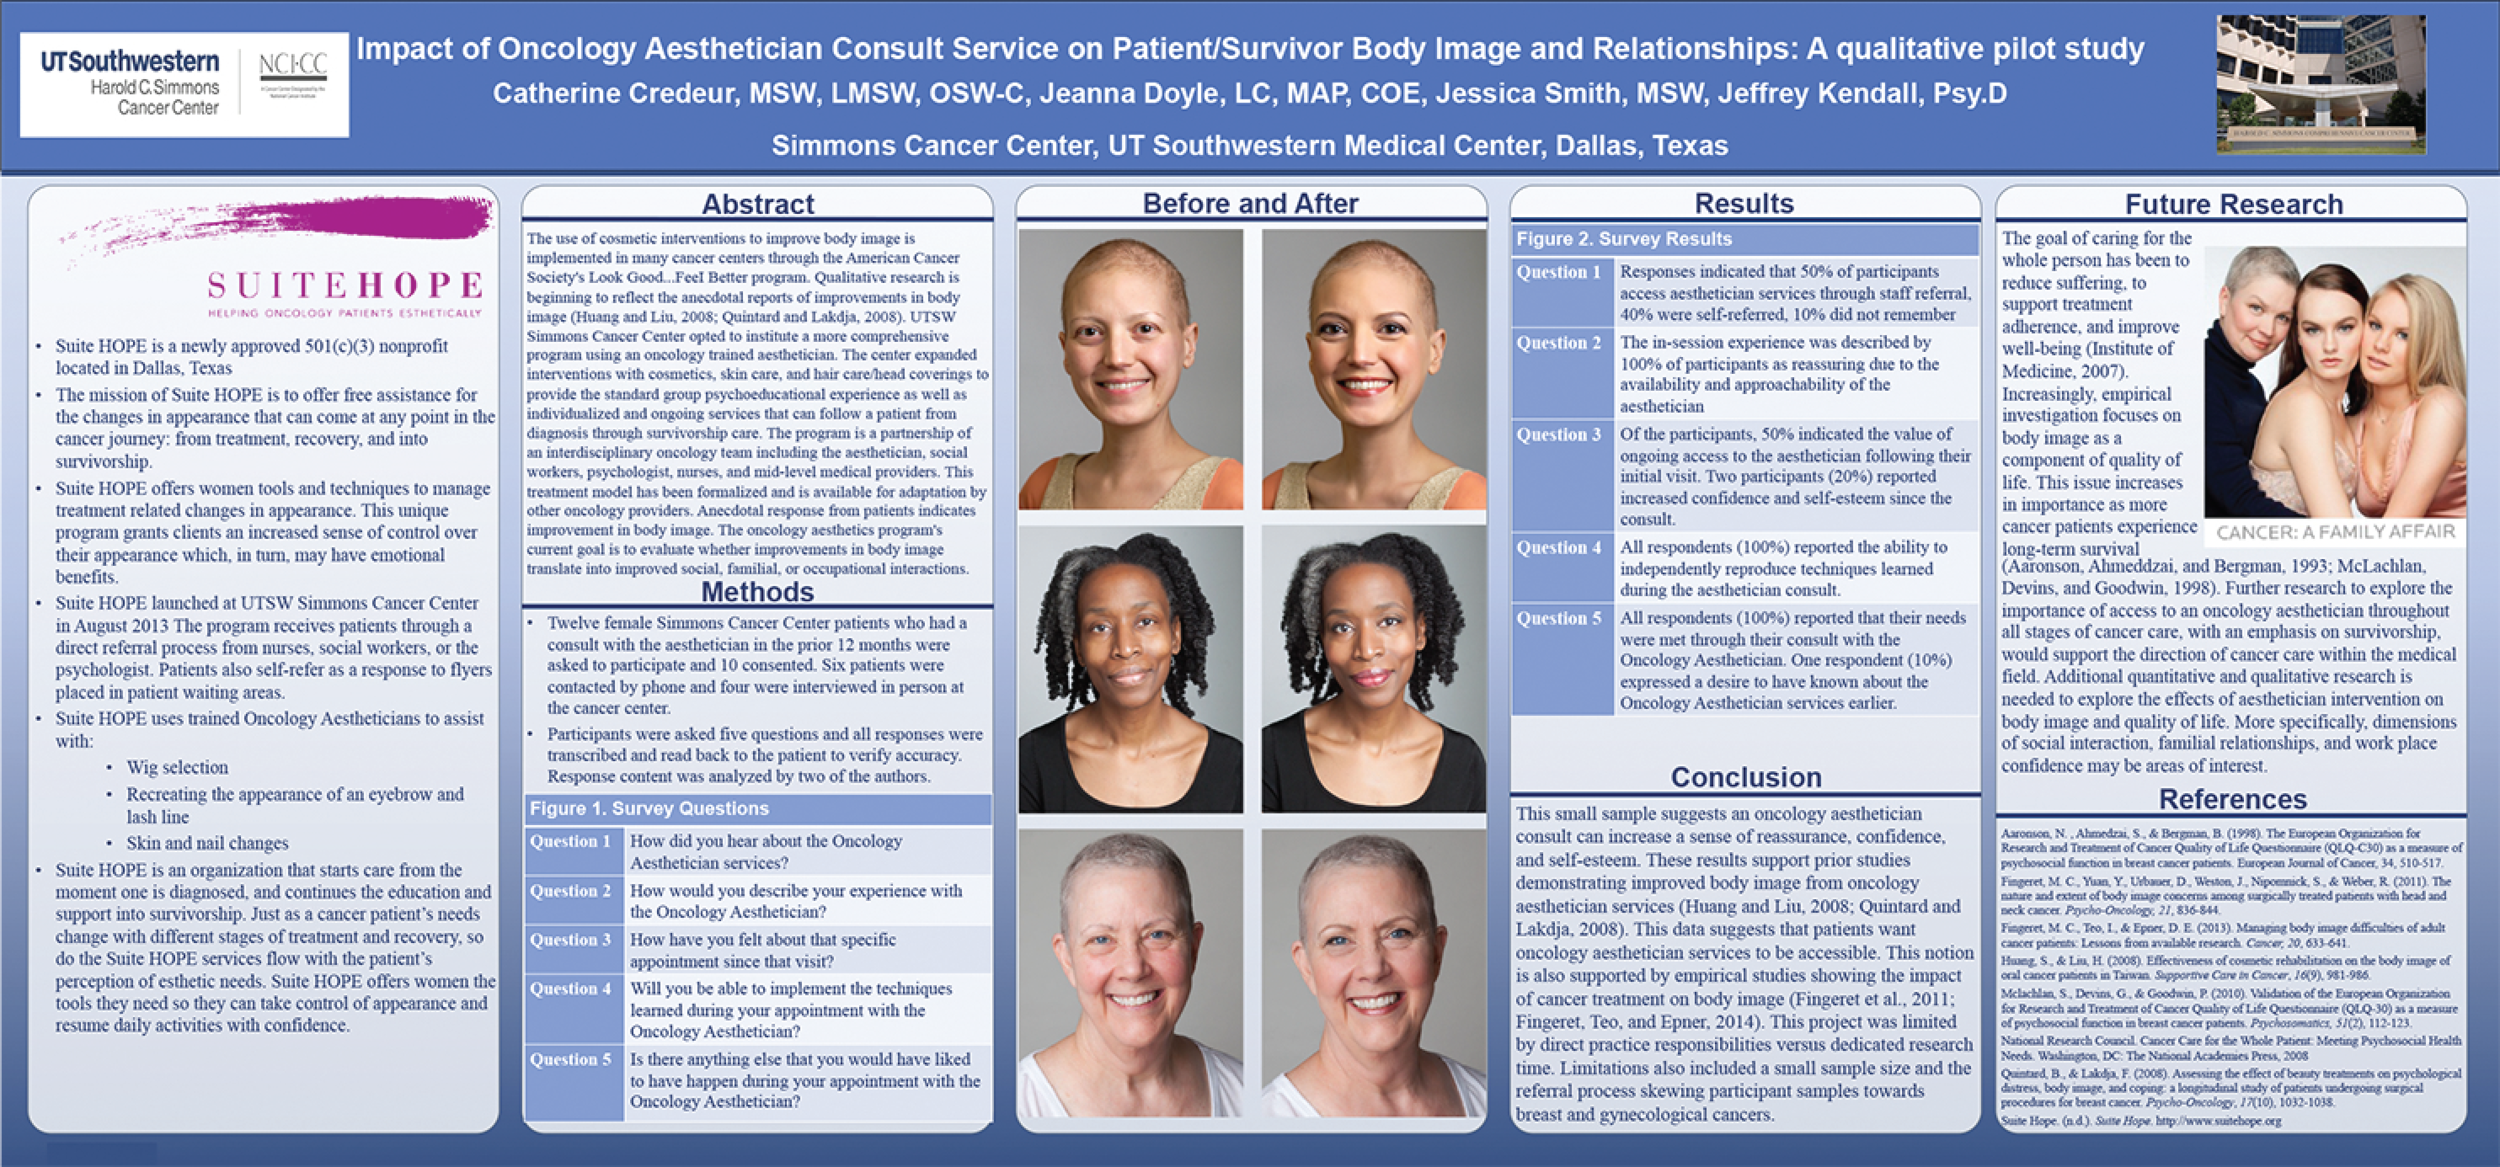 Impact of Oncology Aesthetician Consult Service on Patient/Survivor Body Image and Relationship: A Qualitative Pilot Study